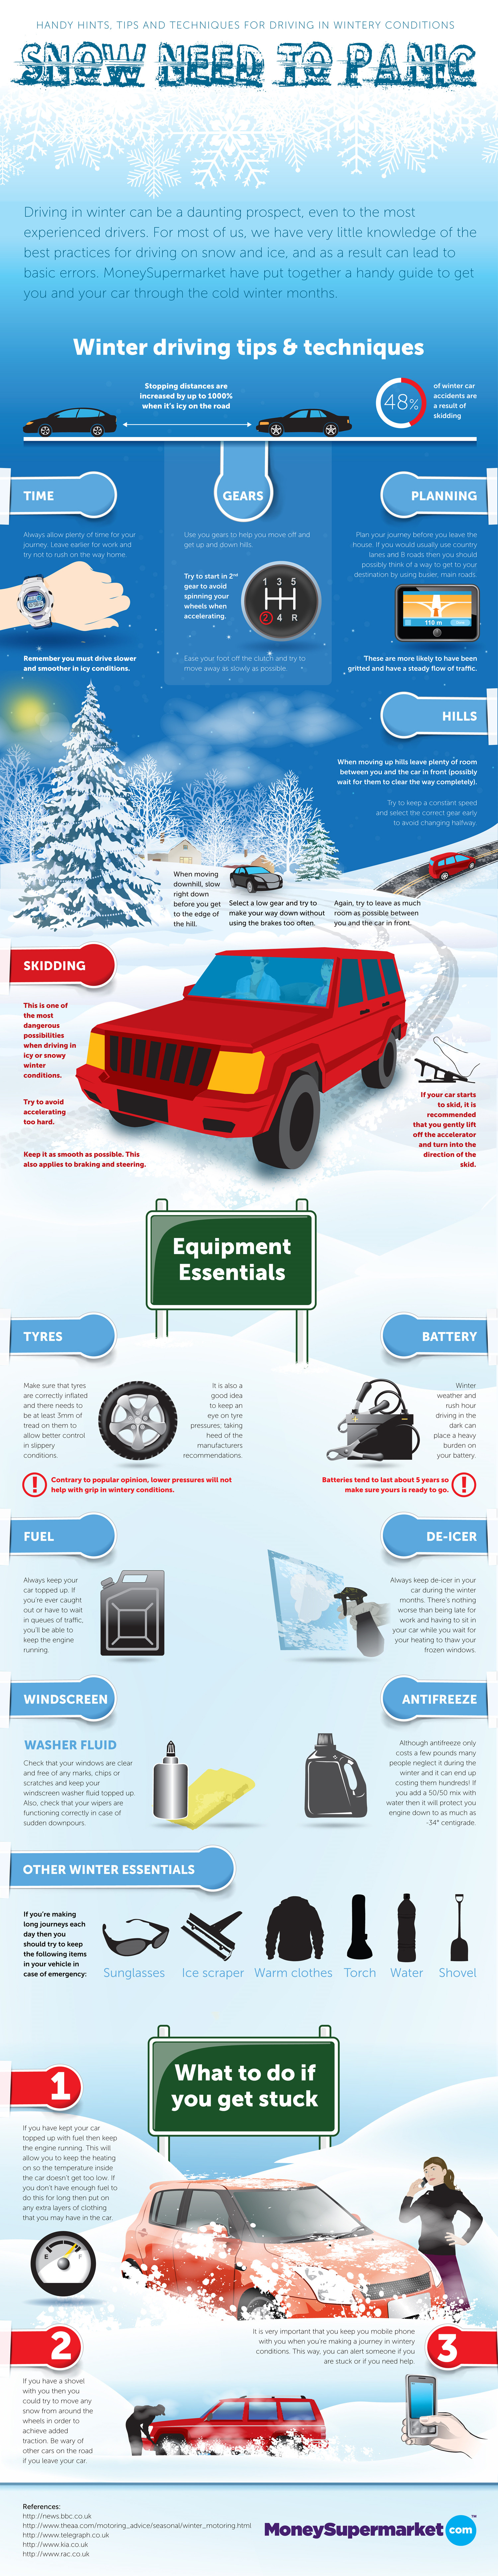 Snow Need to Panic Infographic